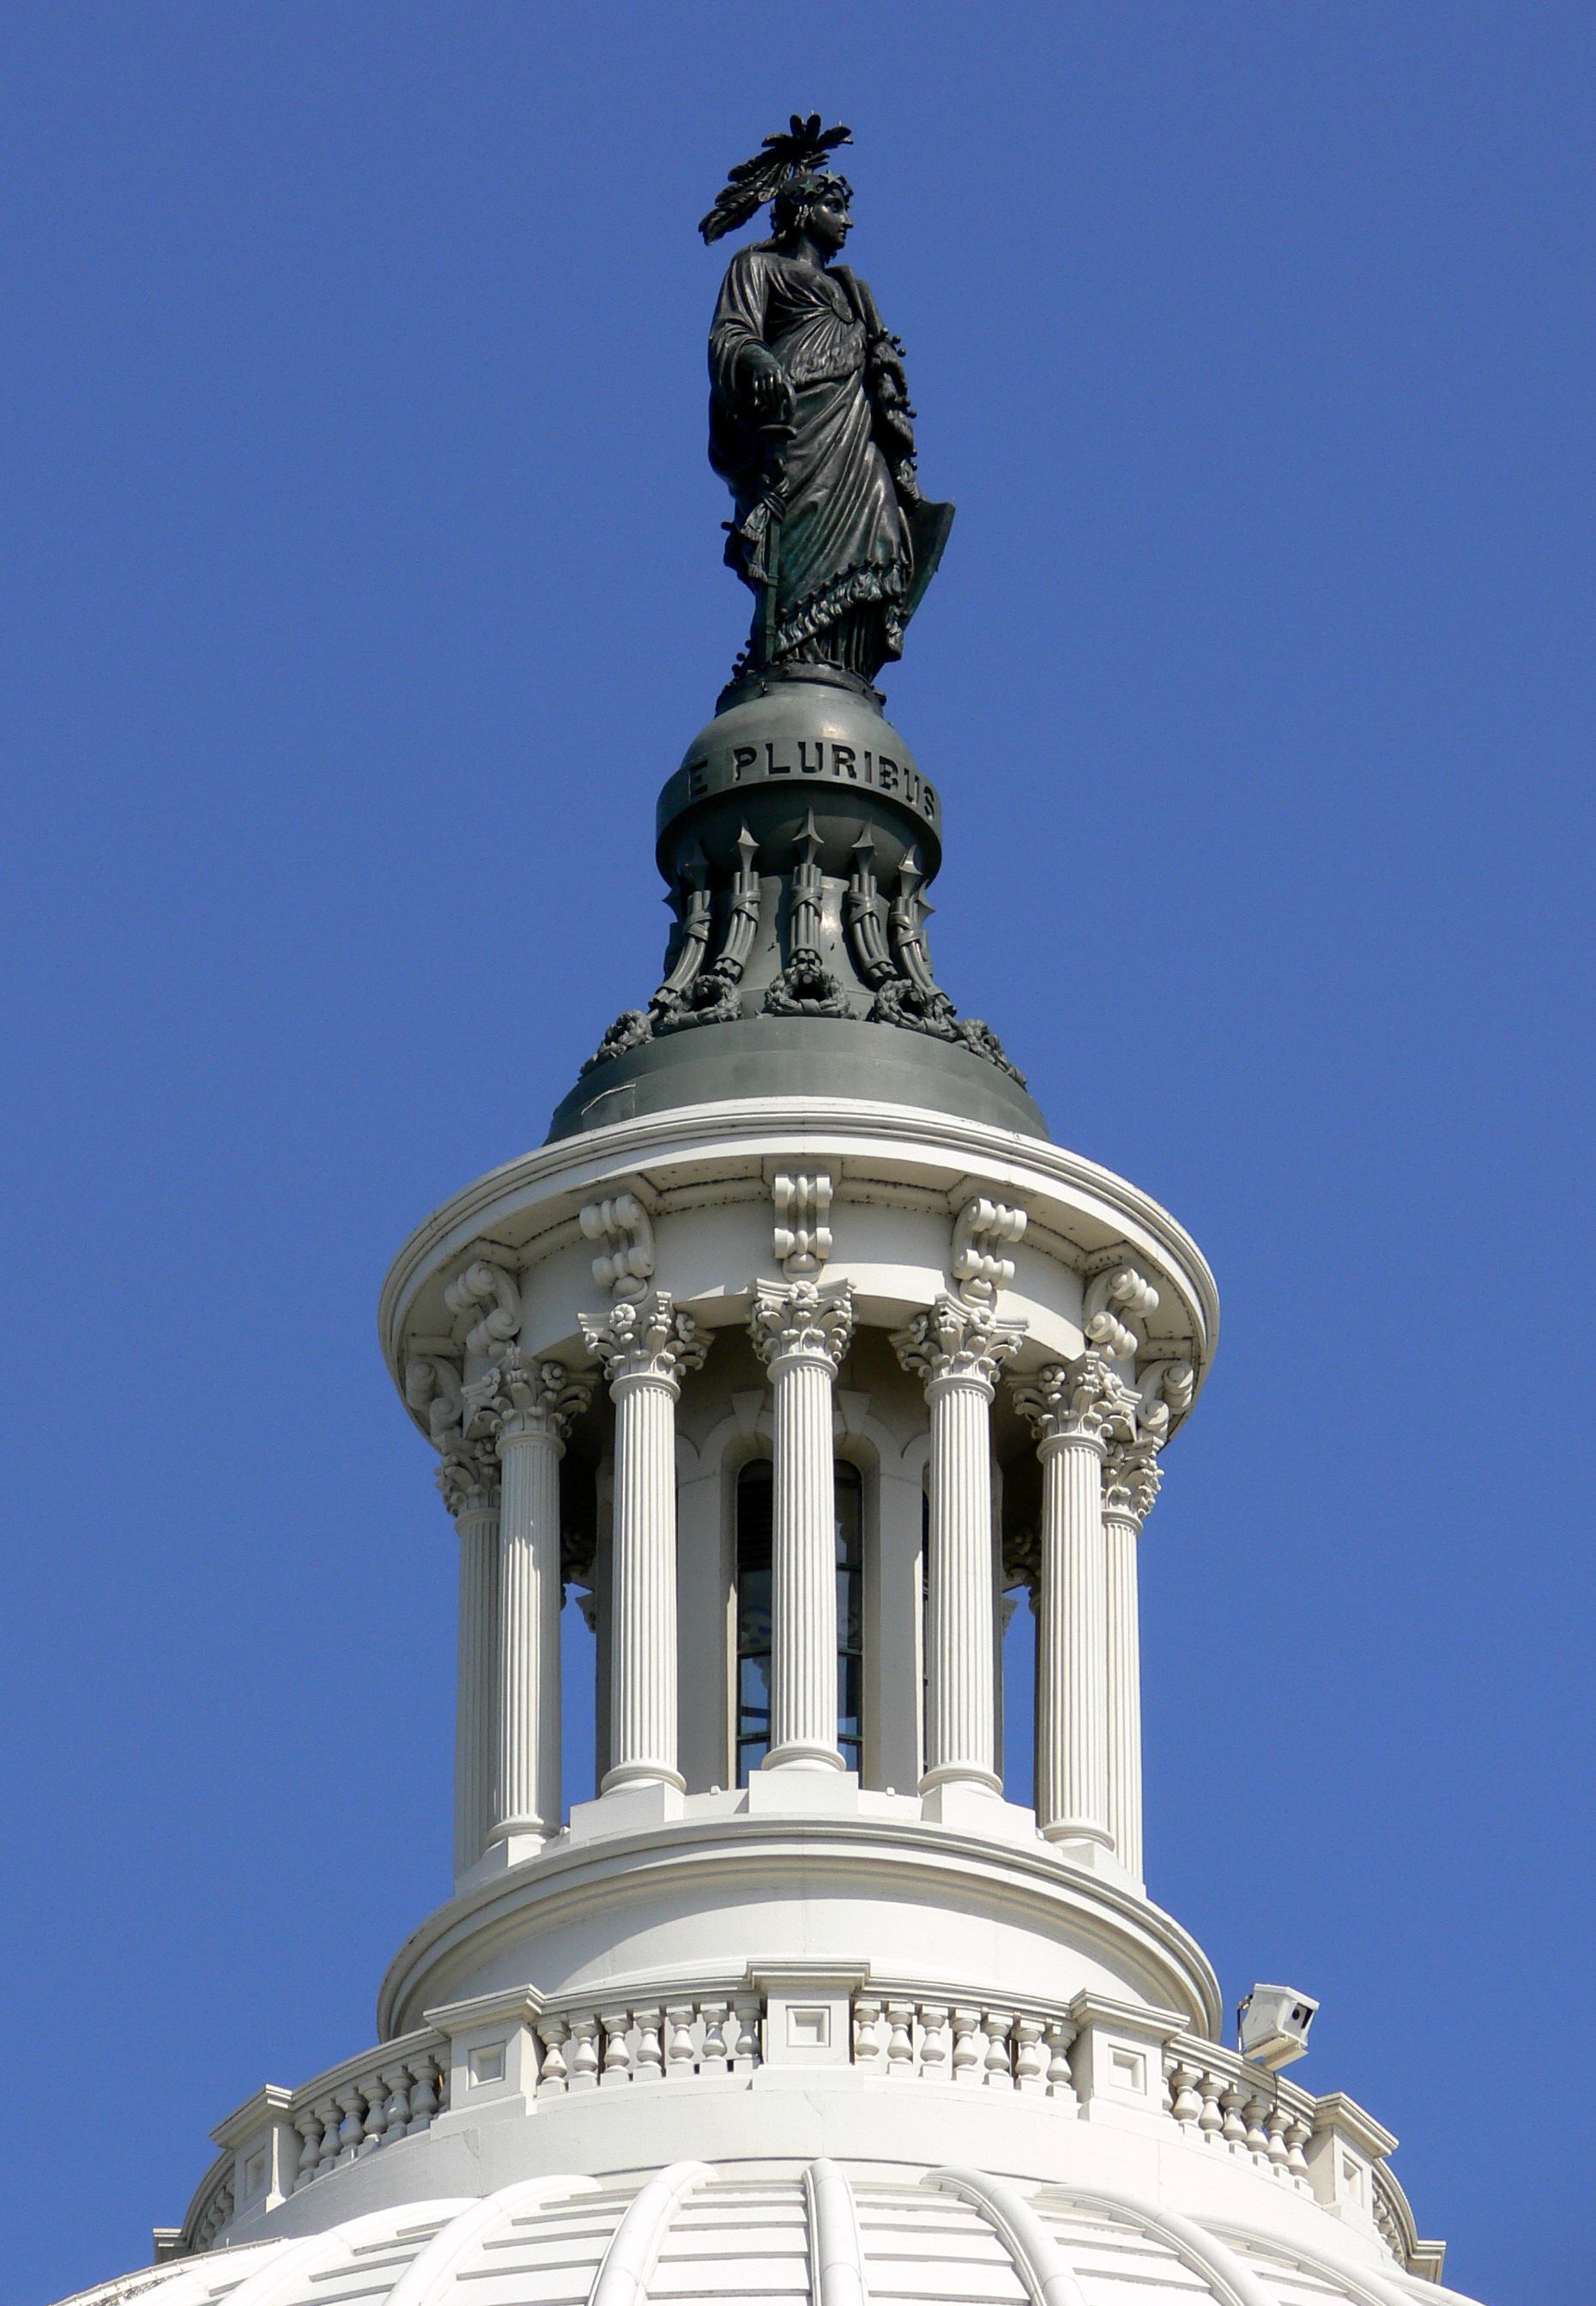 Statue of Freedom and lantern on the dome of the United States Capitol, Washington D. C.